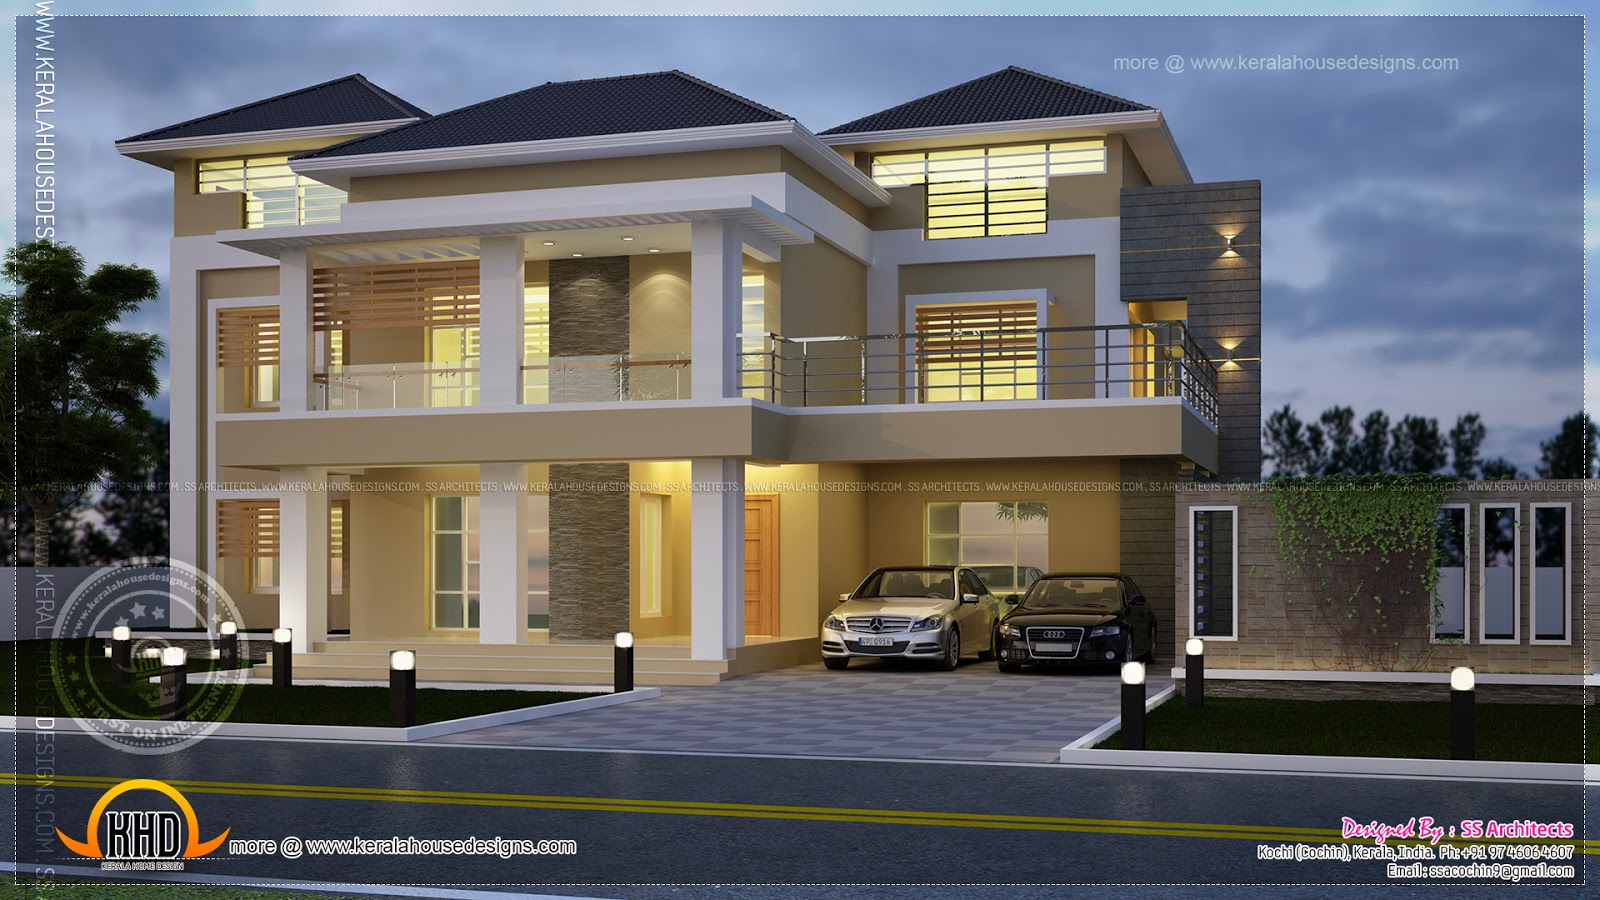 Modern villa night view elevation kerala home design and for Modern villa house design